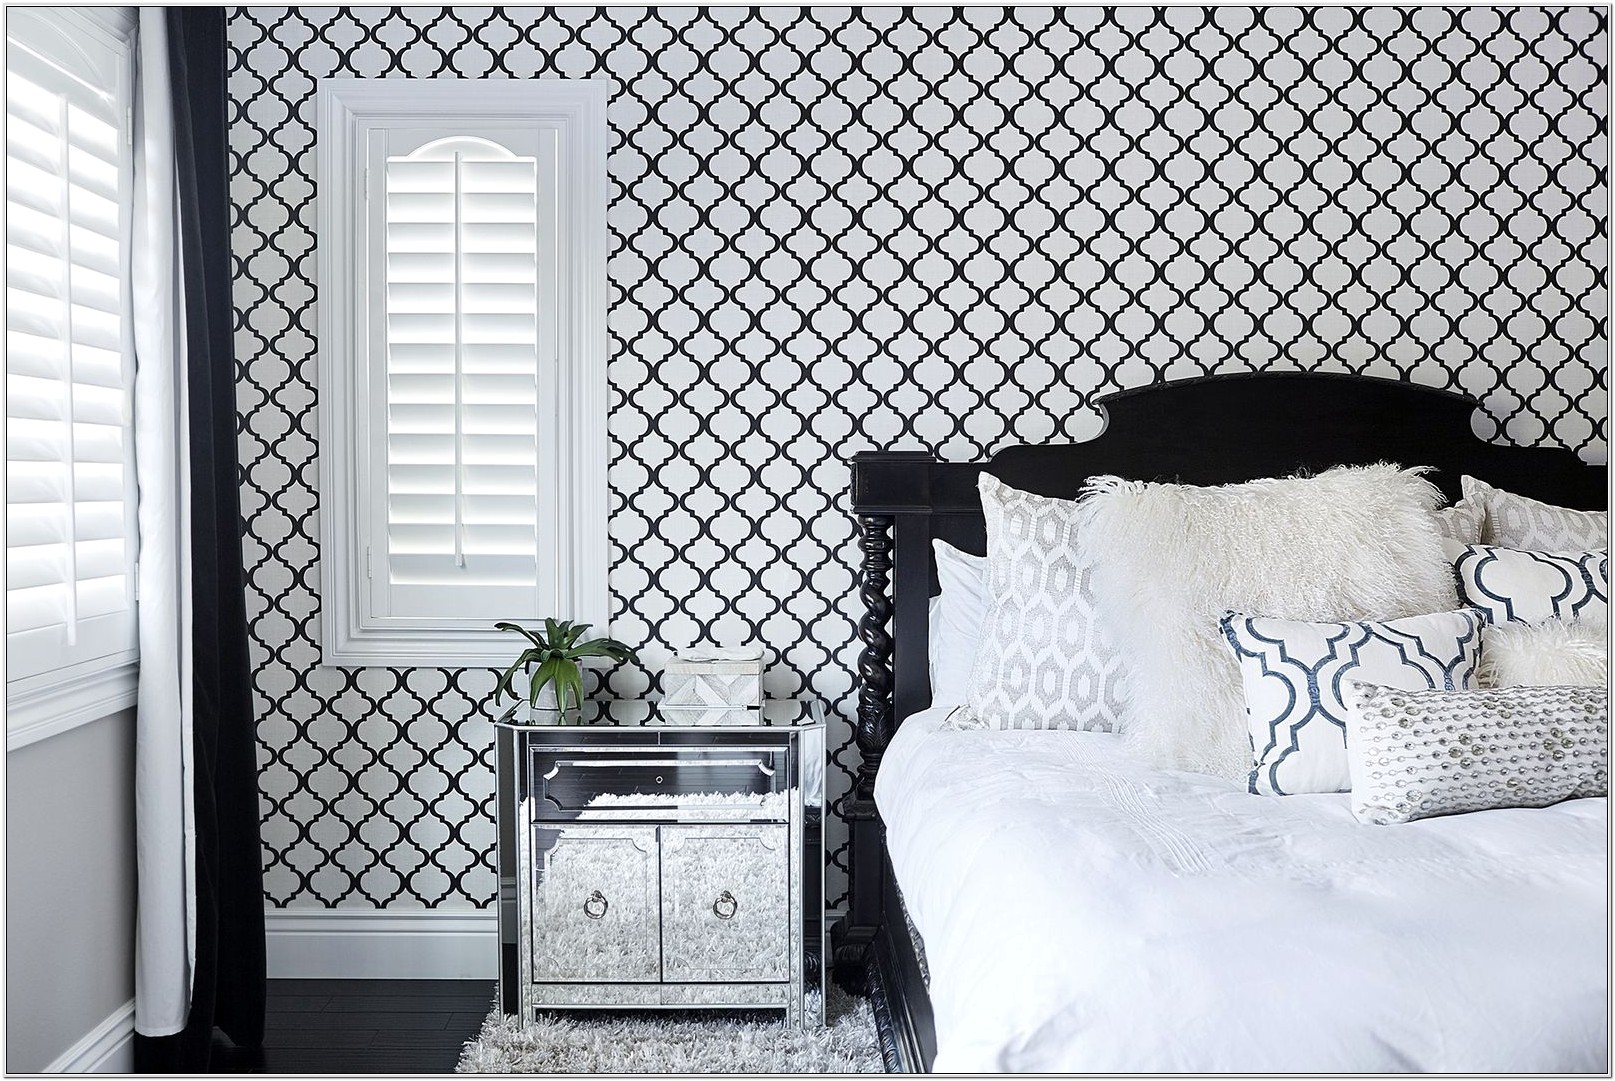 Flip Or Flop Bedroom Decorating Ideas